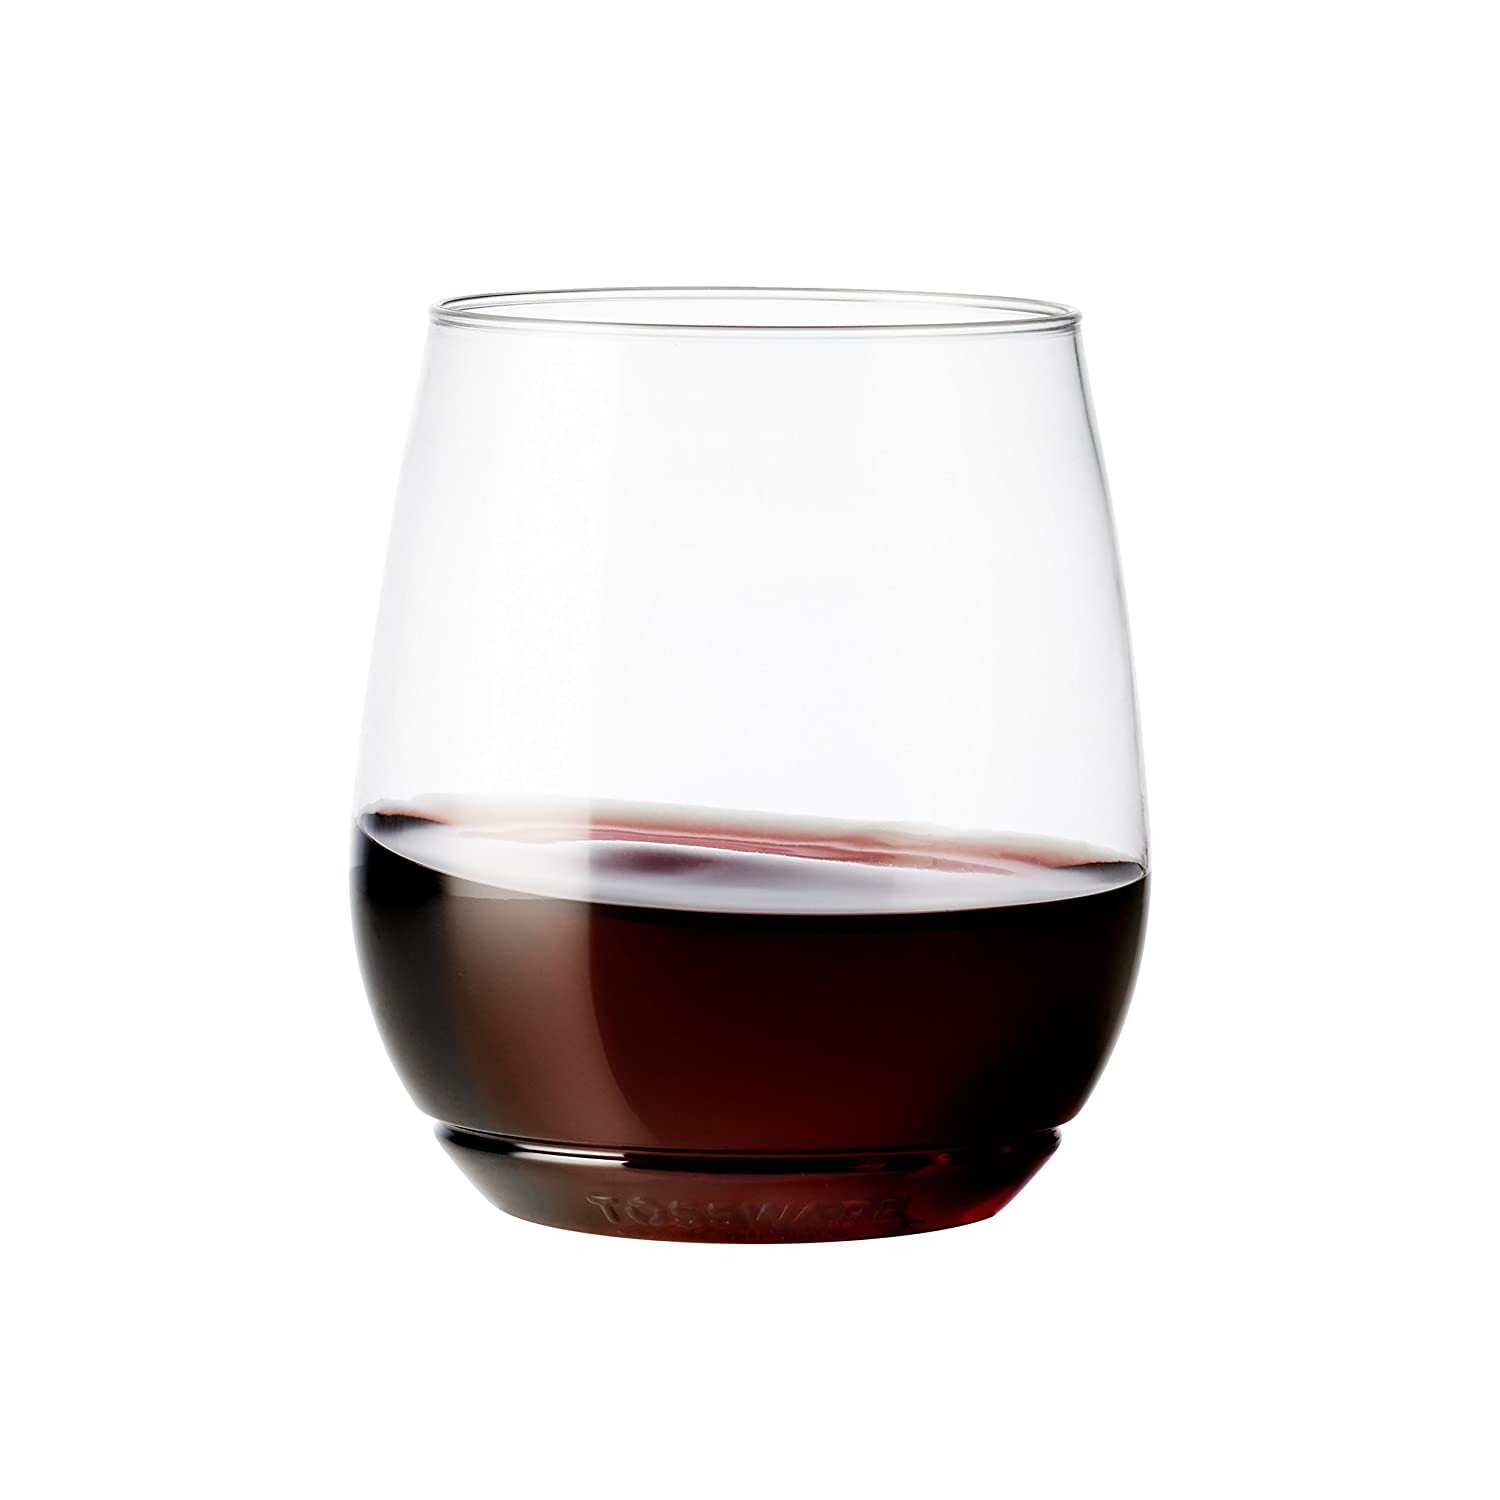 TOSSWARE 14oz Shatterproof Disposable Wine and Cocktail Glass